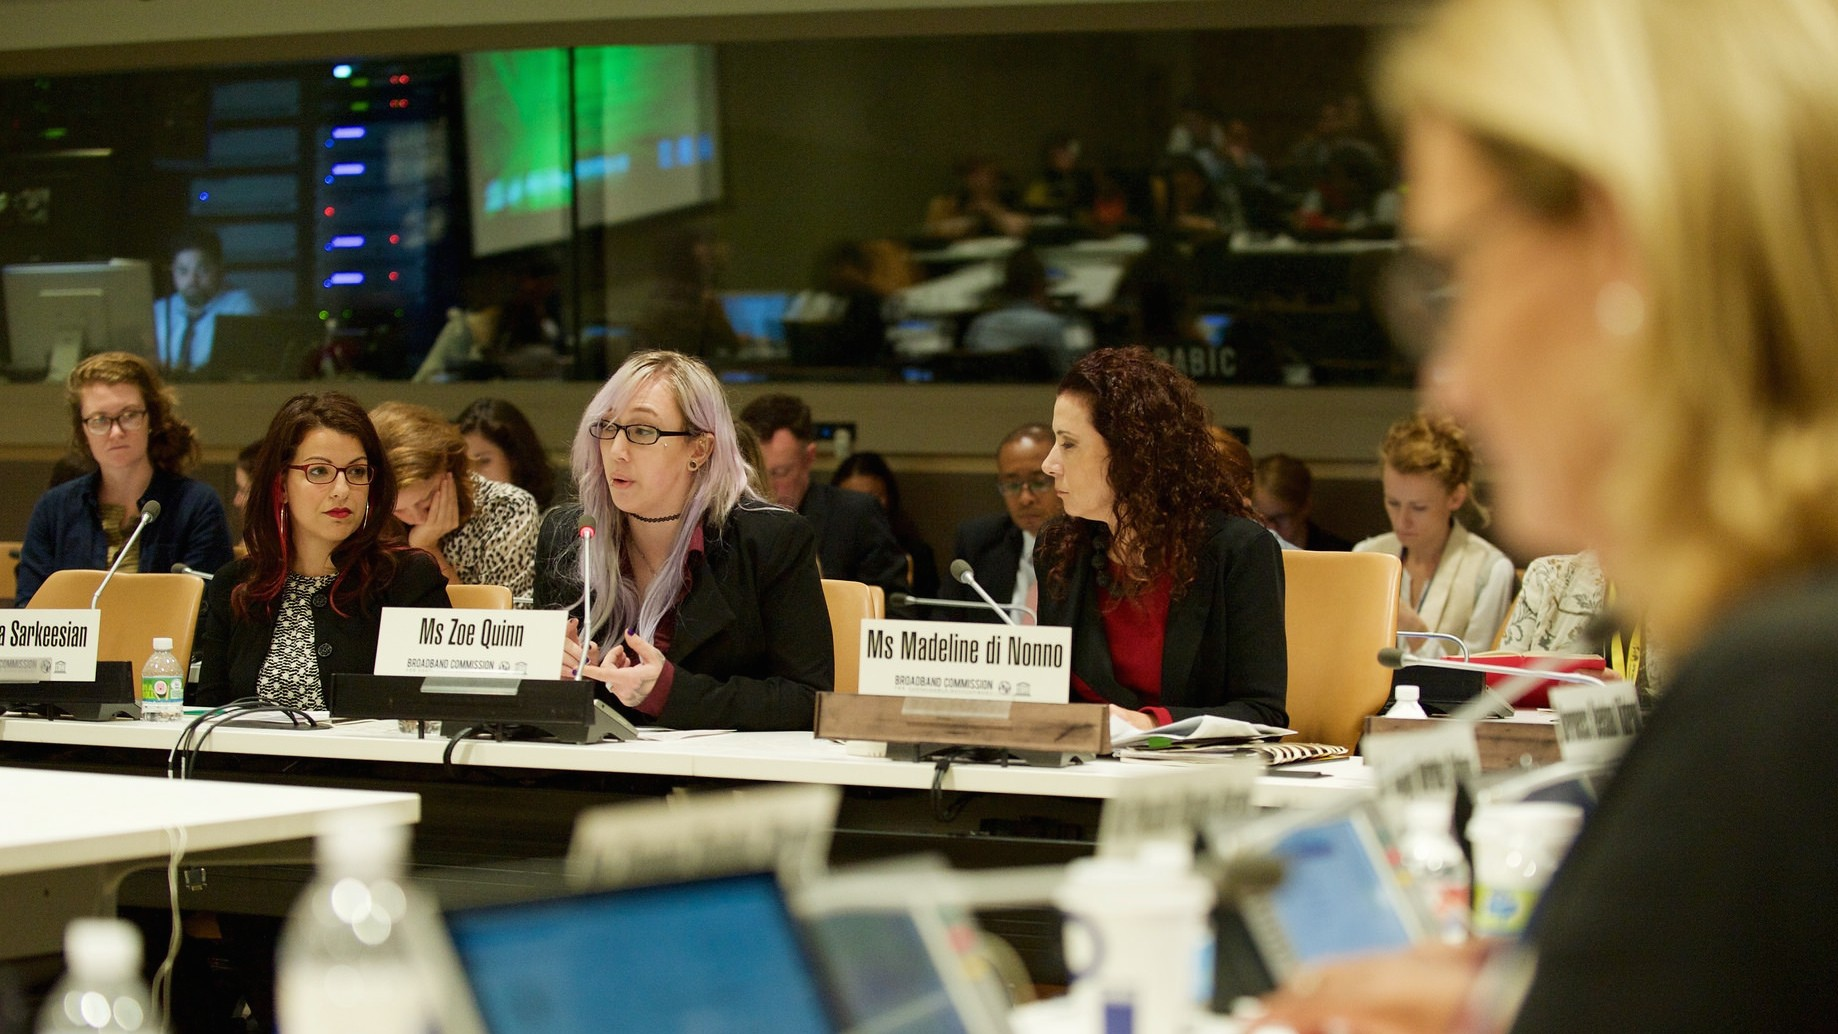 'I'm Disappointed': Zoe Quinn Speaks Out on UN Cyberviolence Report